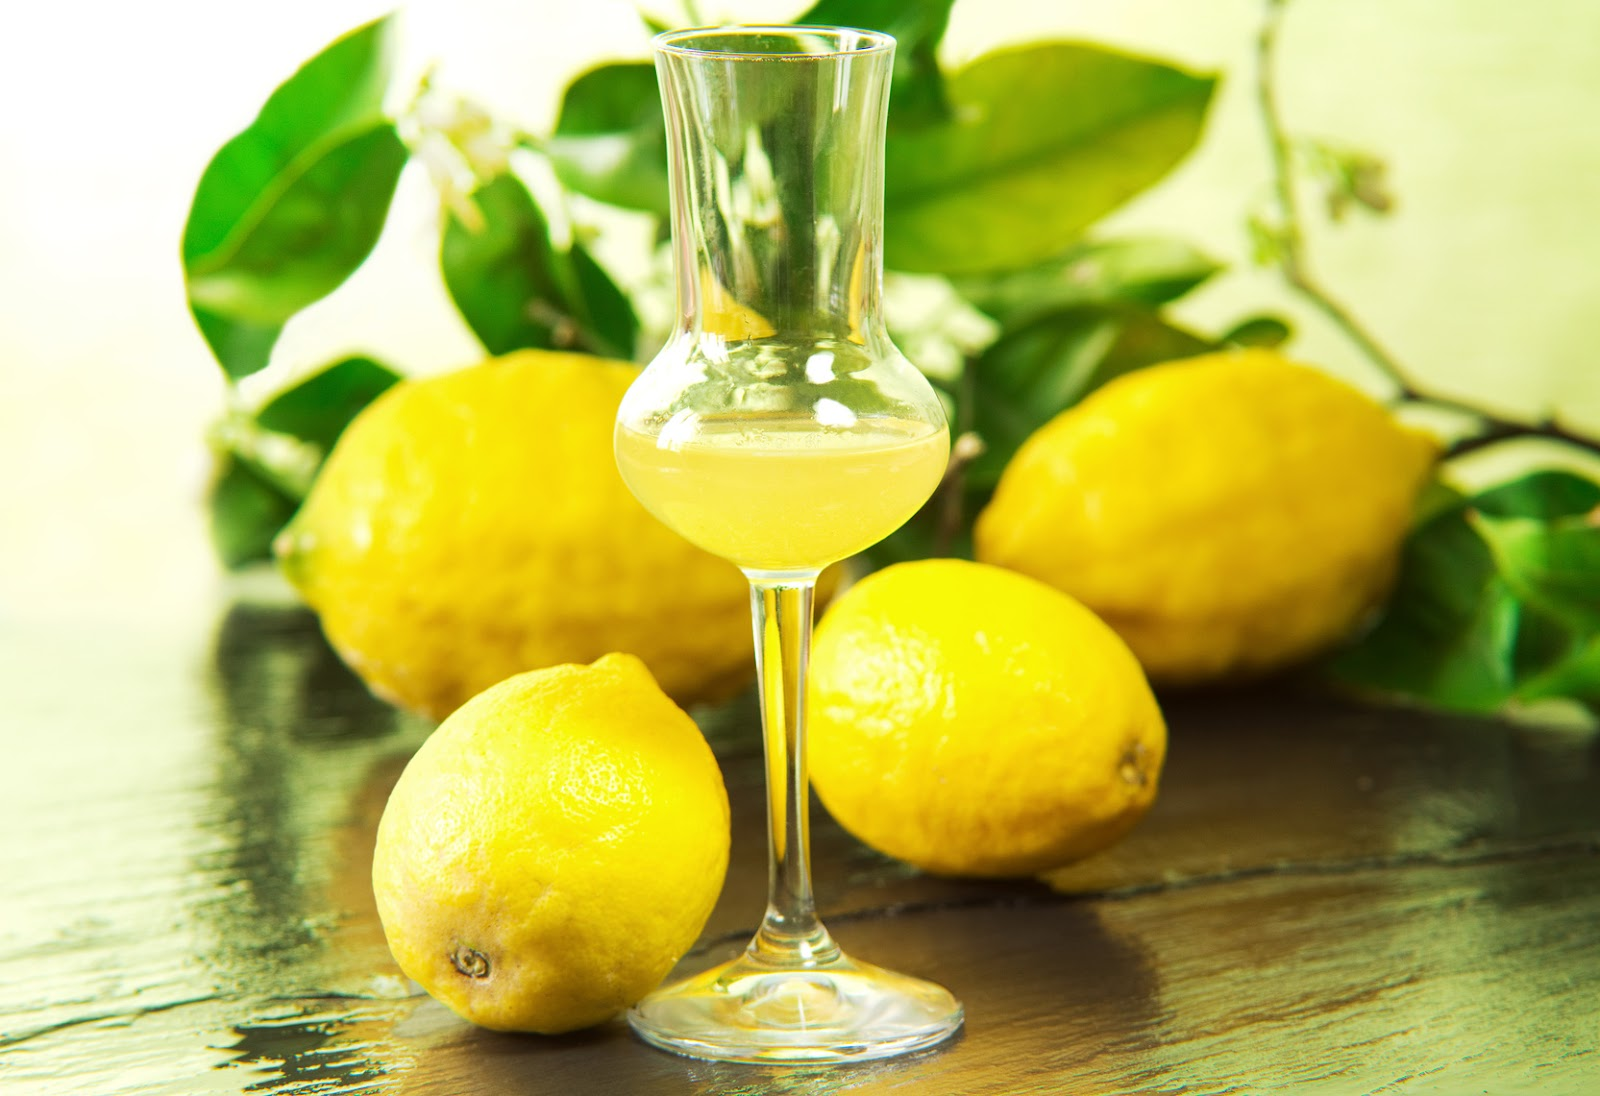 lemons and limoncello.jpg